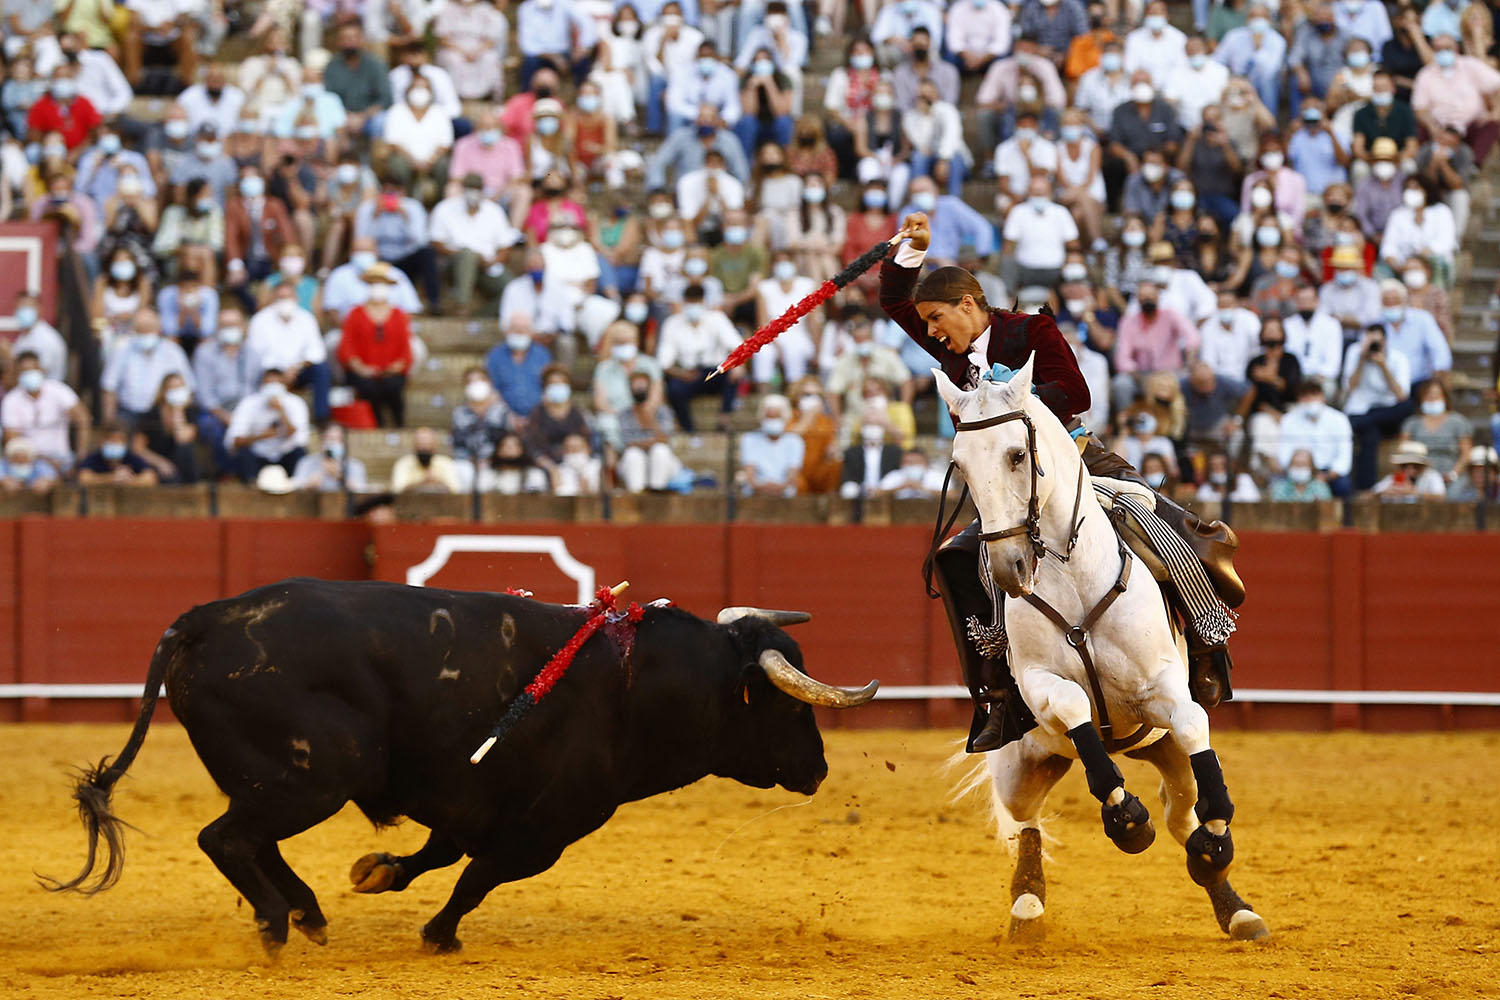 The French mounted bullfighter Lea Vicens performs during a bullfight in Seville, Spain, on Sept. 26. Marcelo del Pozo/Getty Images